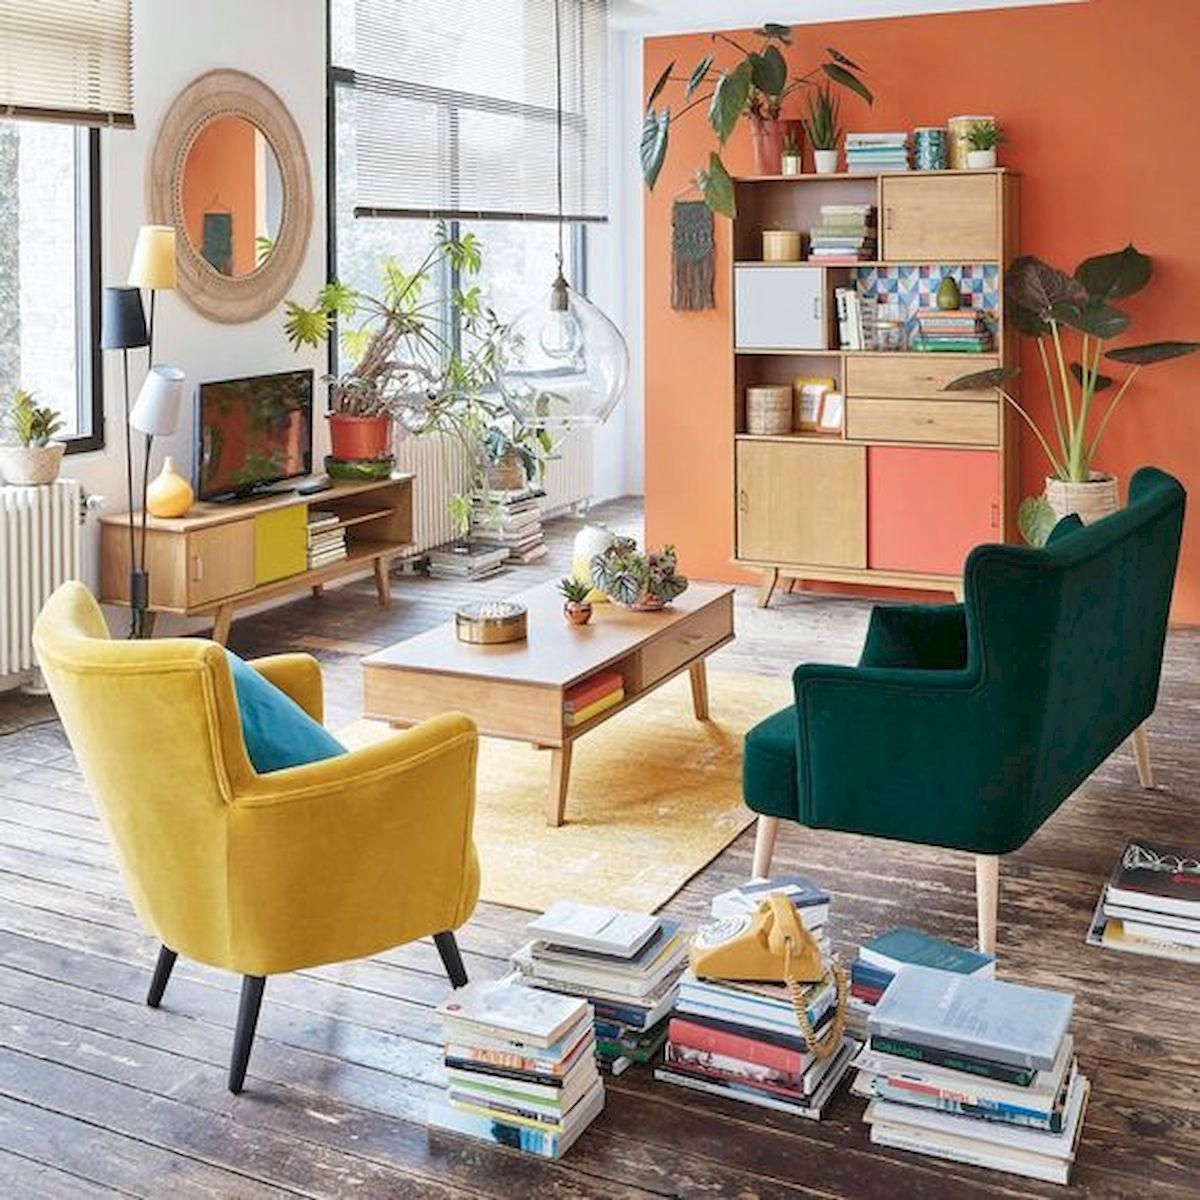 Creative Furniture Desire For Spectacularly Extra Design Visit The Link Ref 9007077314 Now Vintage Living Room Decor Retro Living Rooms Vintage Living Room